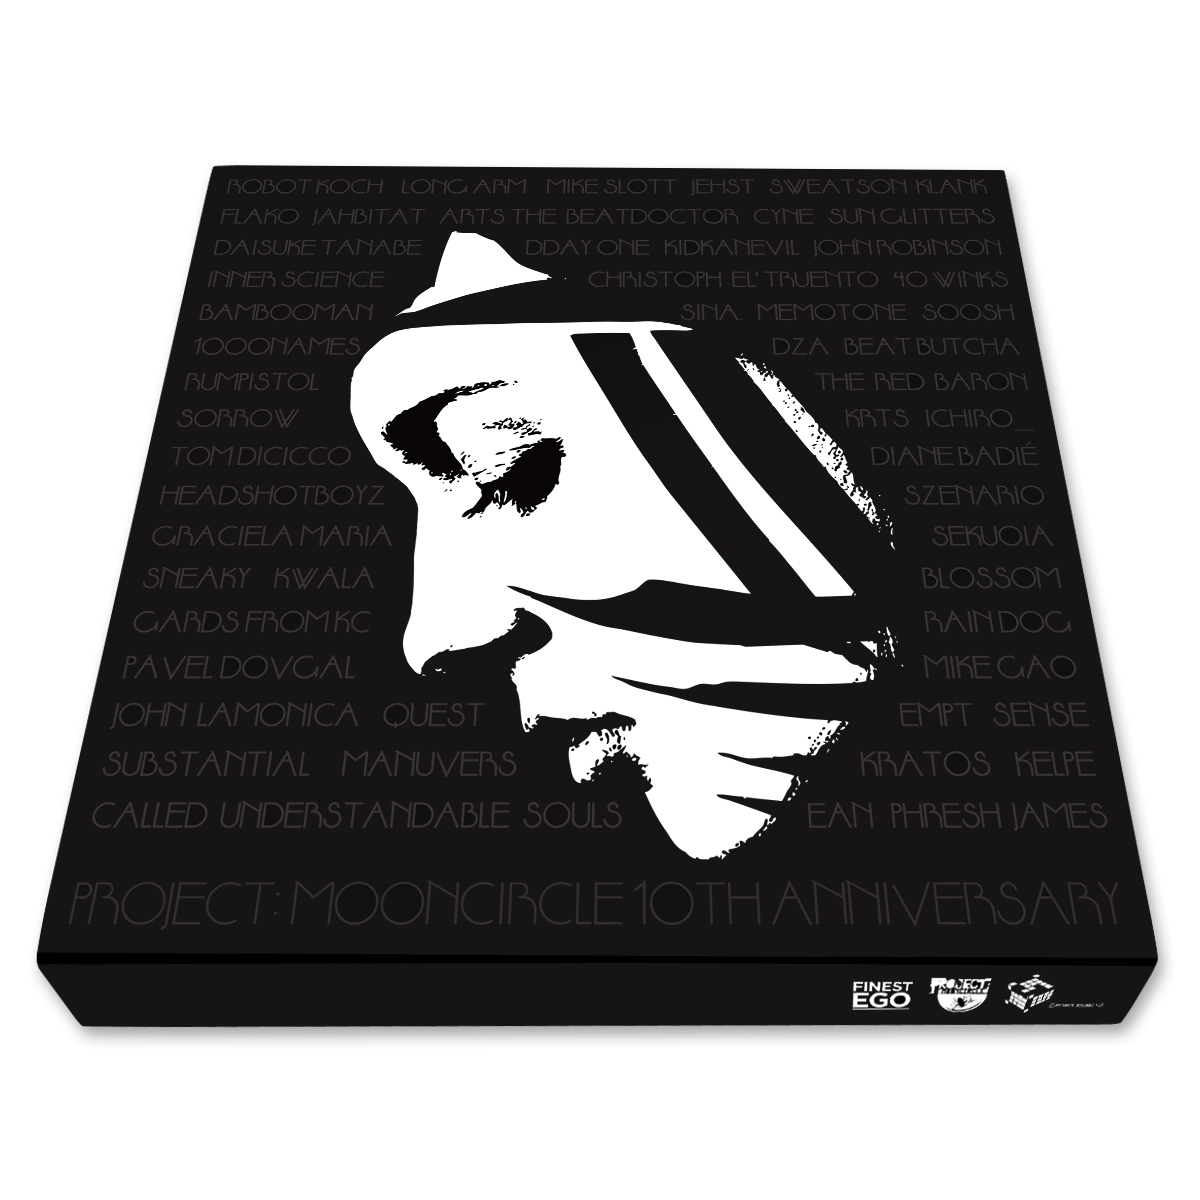 News: Project Mooncircle celebrates 10th anniversary with 4LP box set